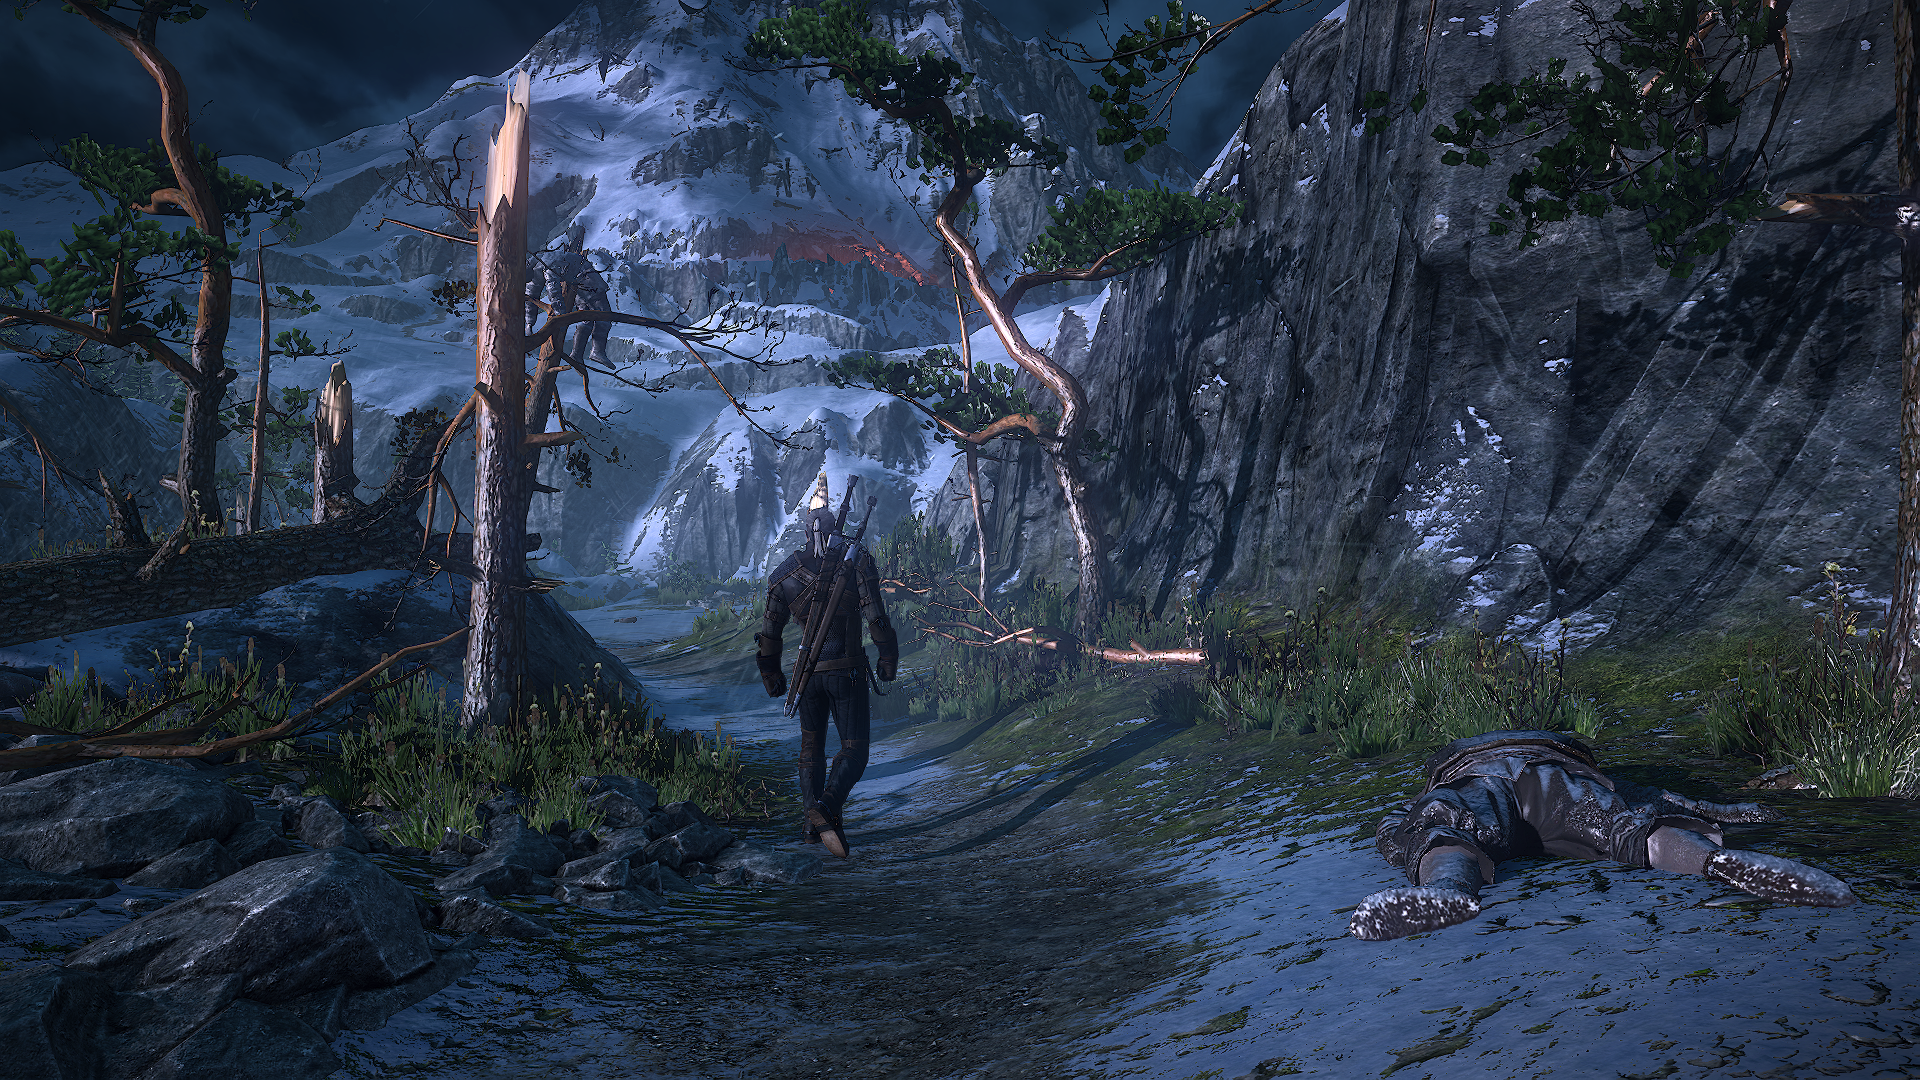 _bmuploads_2013-10-28_6255_the_witcher_3_wild_hunt_forest_path.png - Witcher 3: Wild Hunt, the